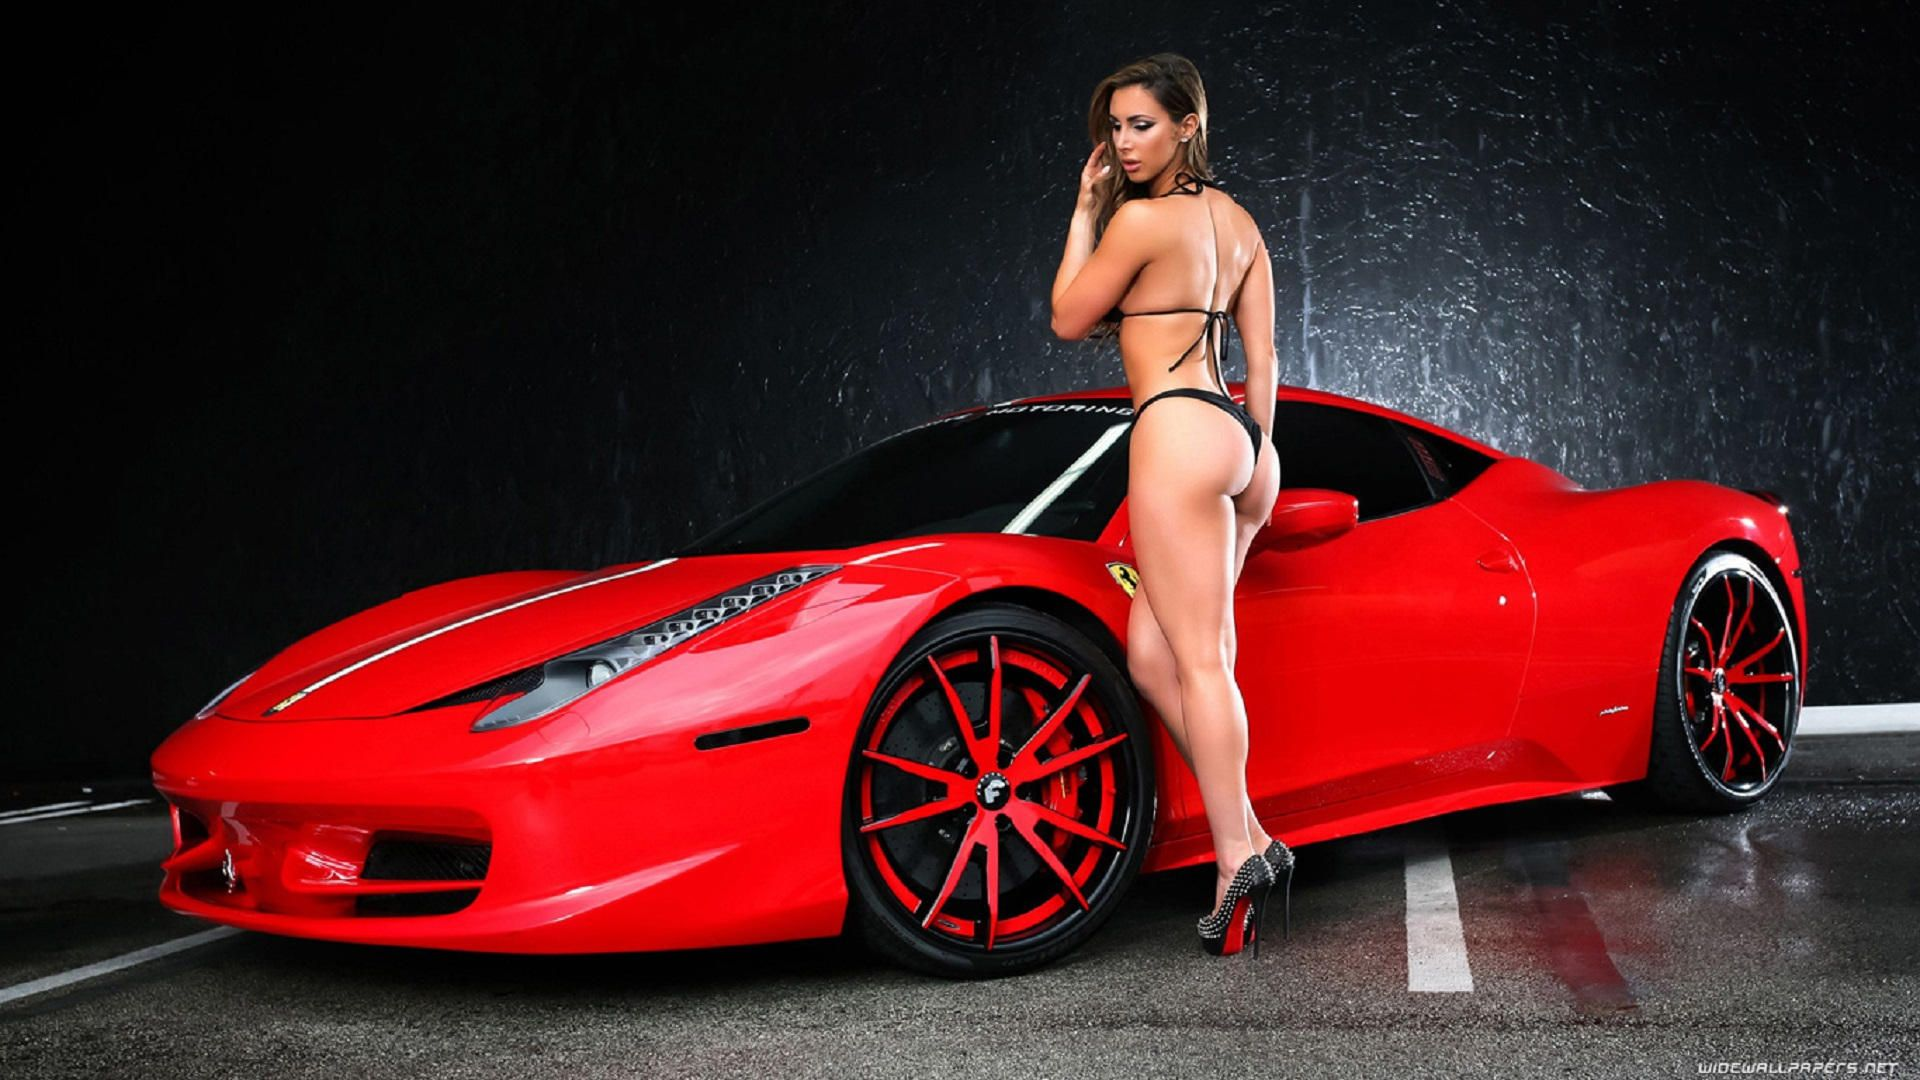 cool car ferrari and best girl hot cars car wallpapers hd high - Super Cool Cars With Girls